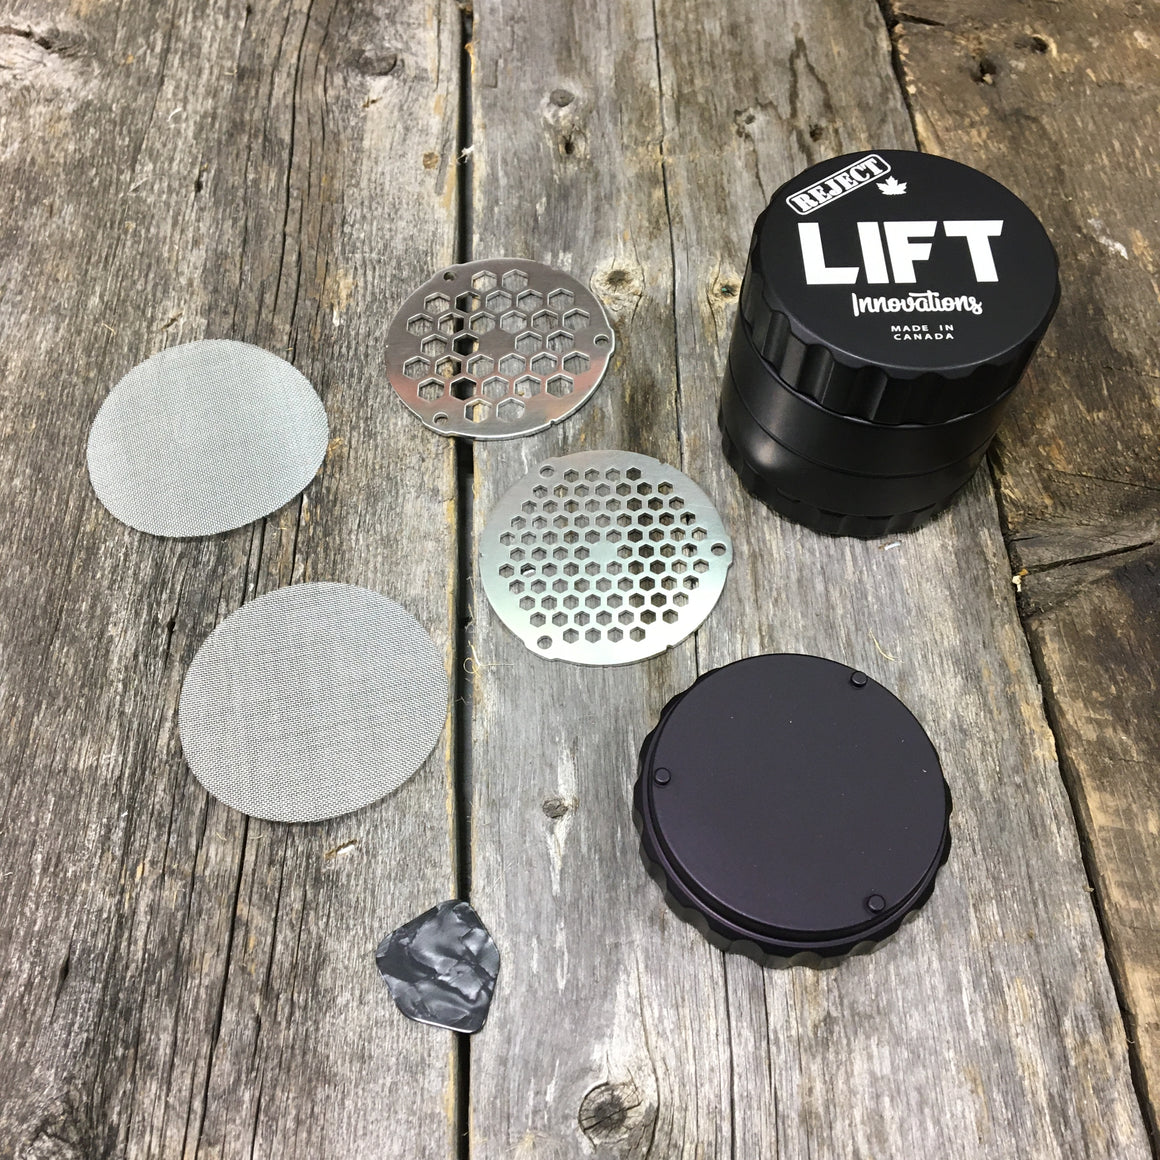 REJECT 4 Piece BLACK Grinder With Accessories LIFETIME WARRANTY Made with parts that have a scratch, dent or off color